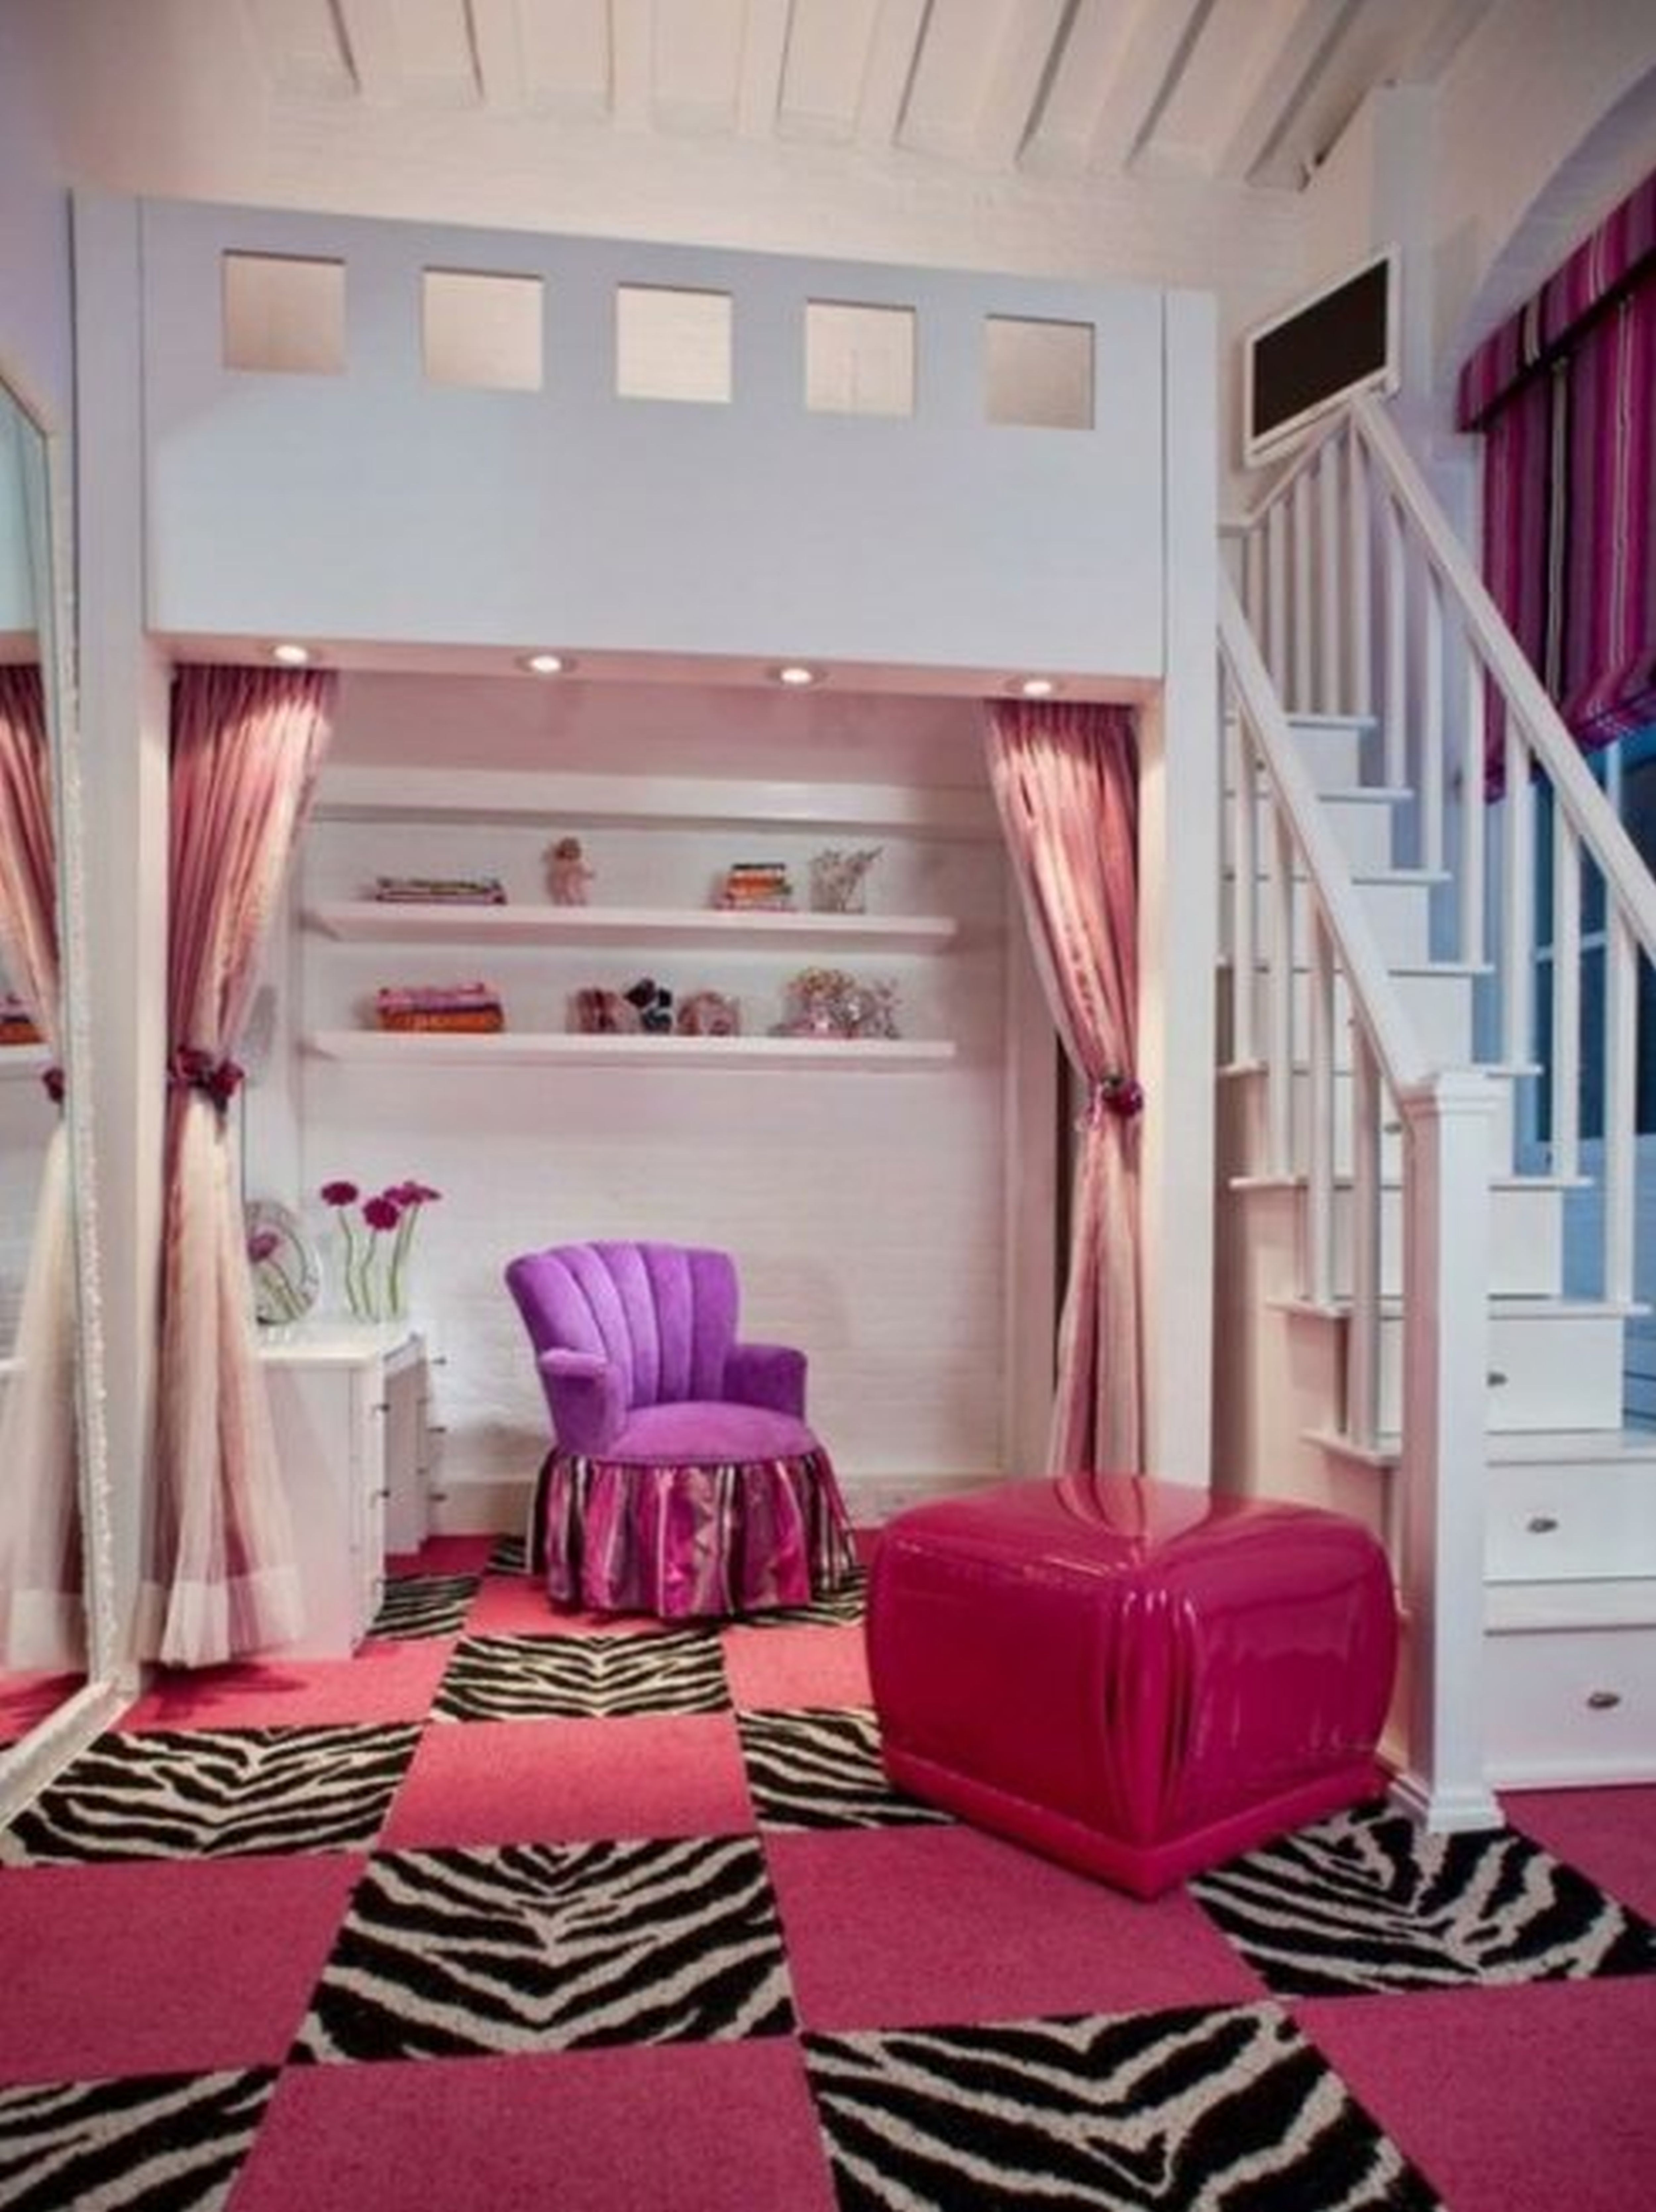 Impressive Loft Bed for Lovely Room Ideas for Teens with Pink Ottoman and White Dressing Table